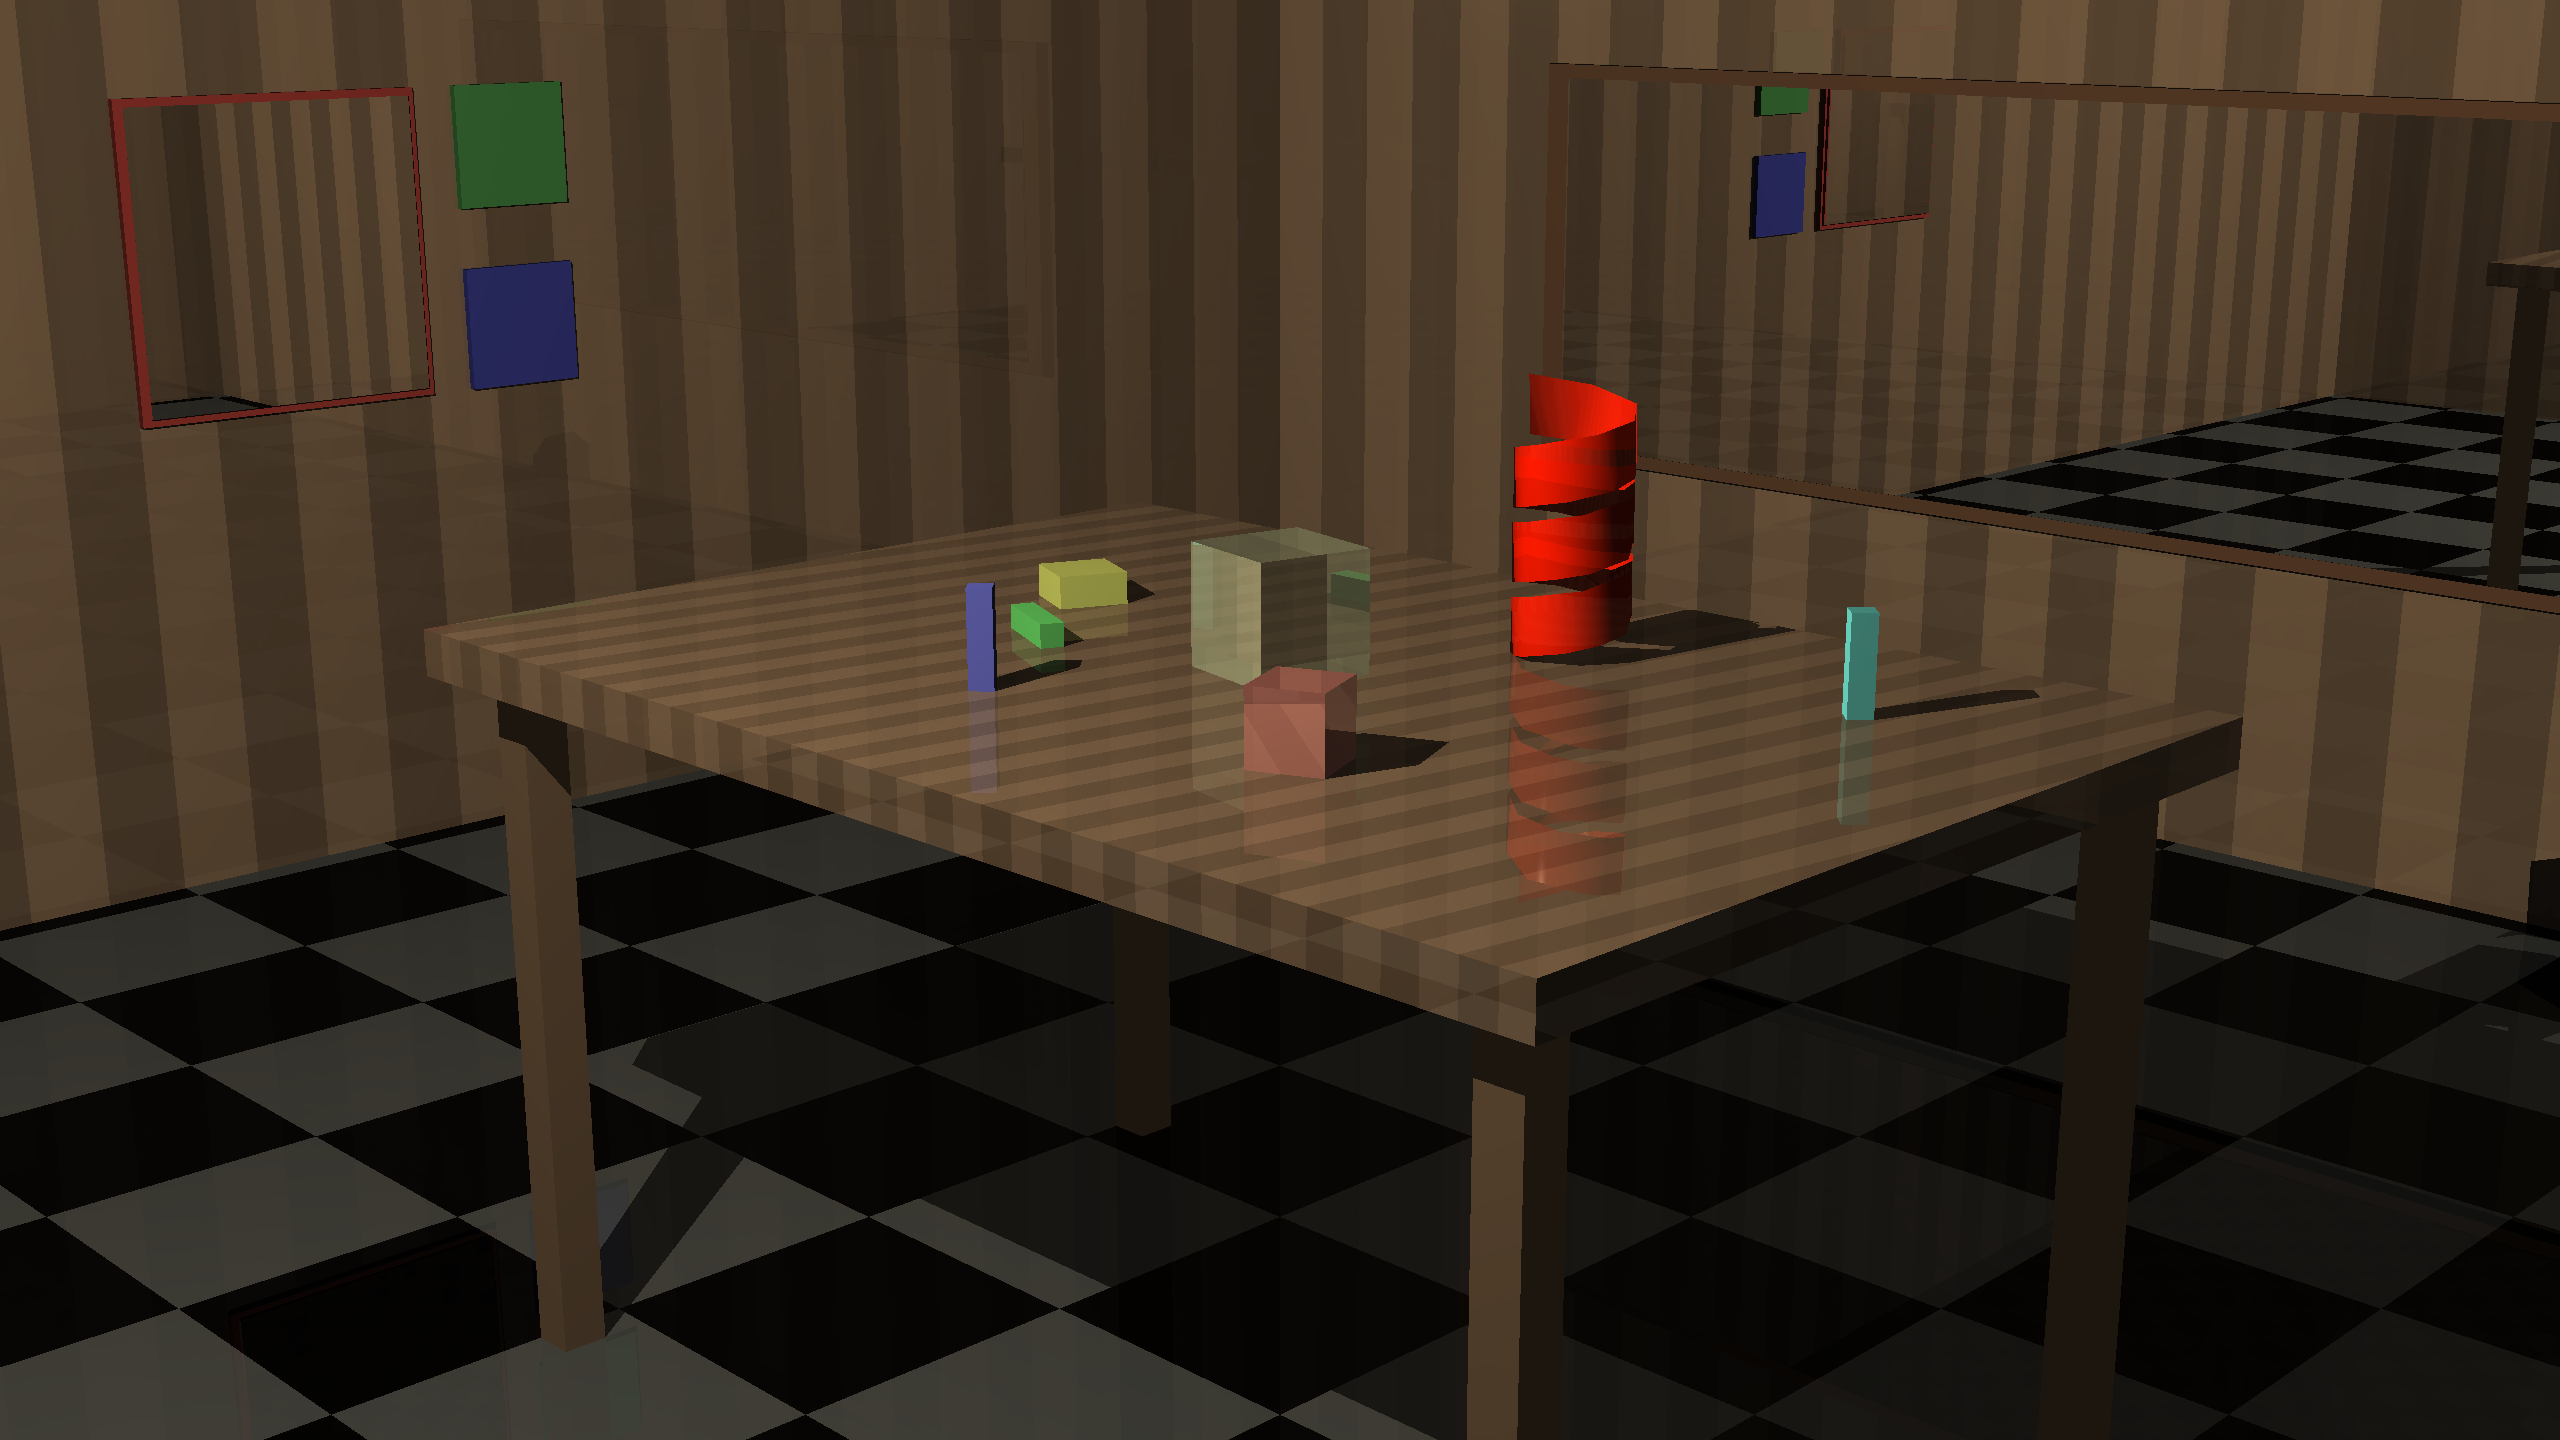 Example image from my Ray Tracer implementation